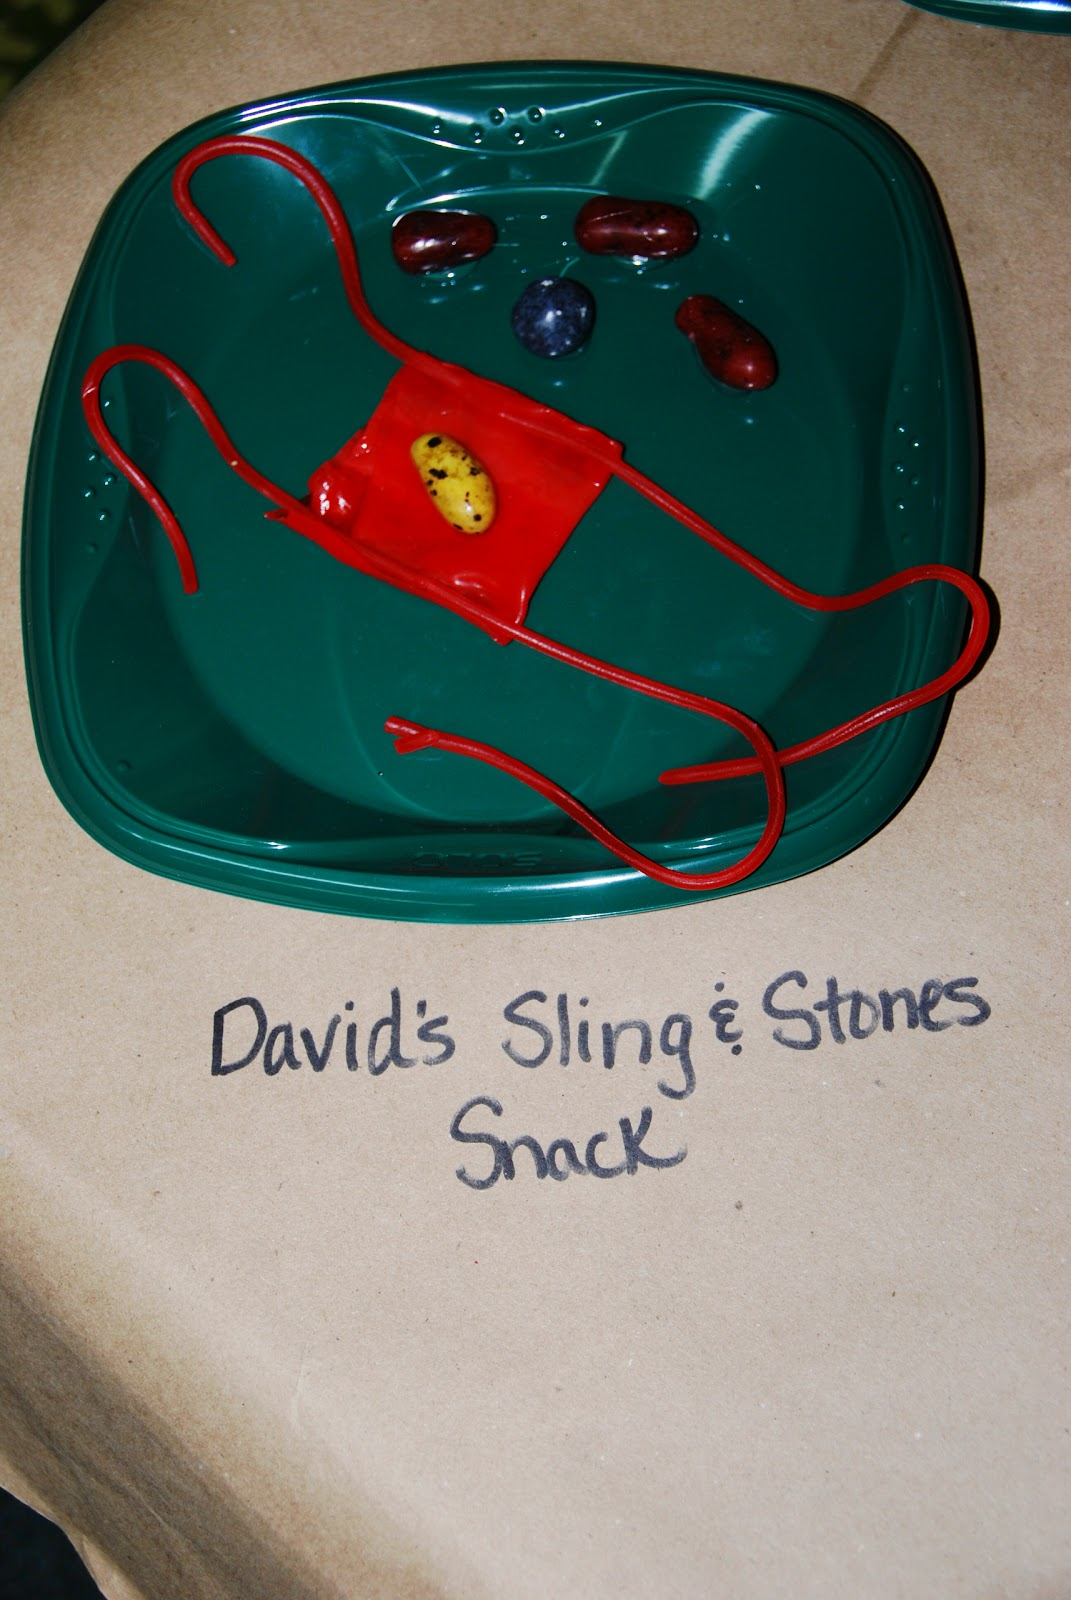 Life 39 s a bowl of cherries david 39 s sling stones snack craft for David and goliath craft